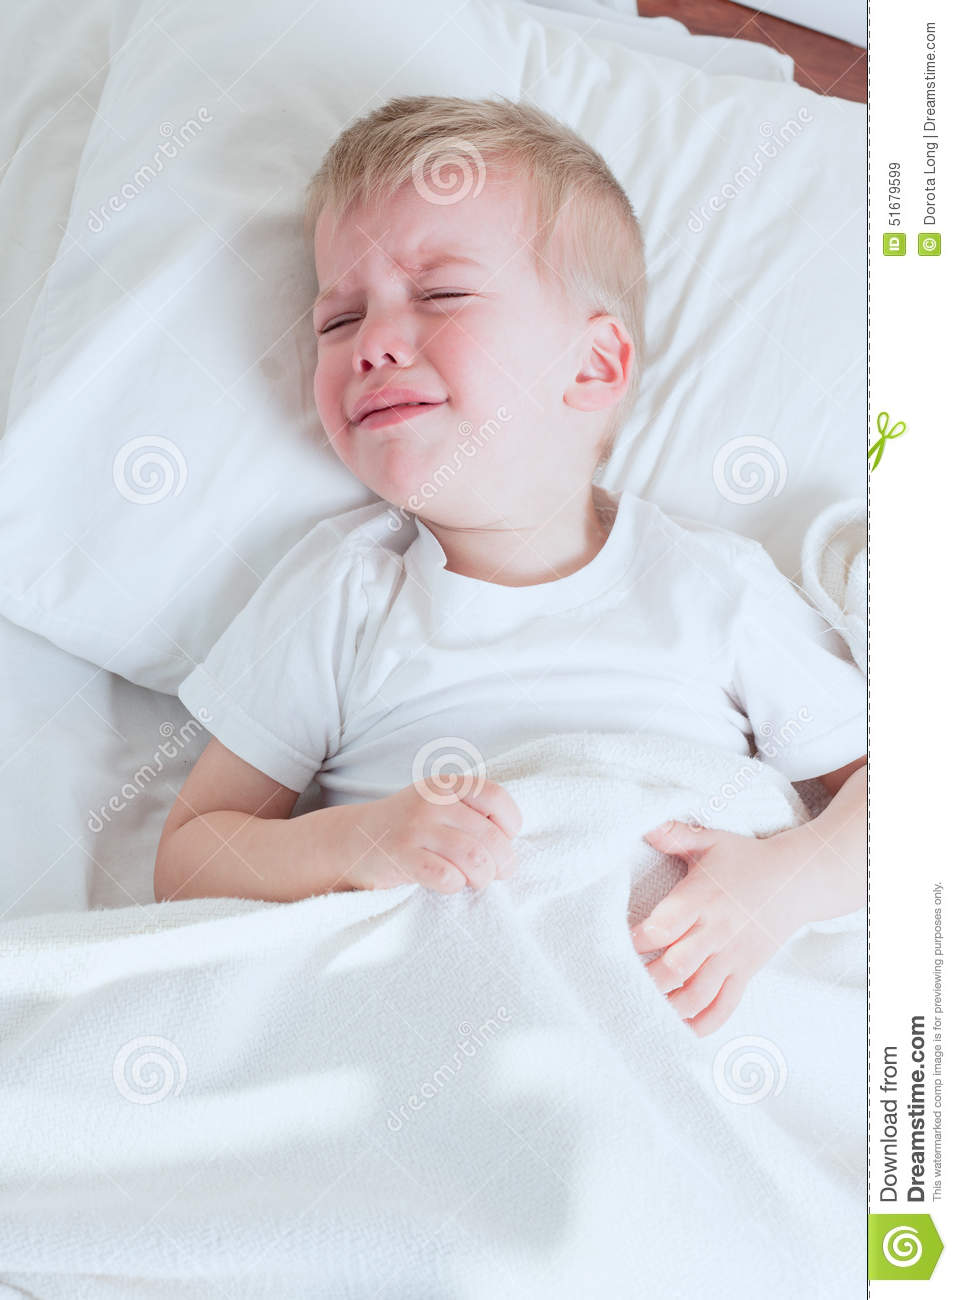 Sick Toddler Boy Crying In Bed